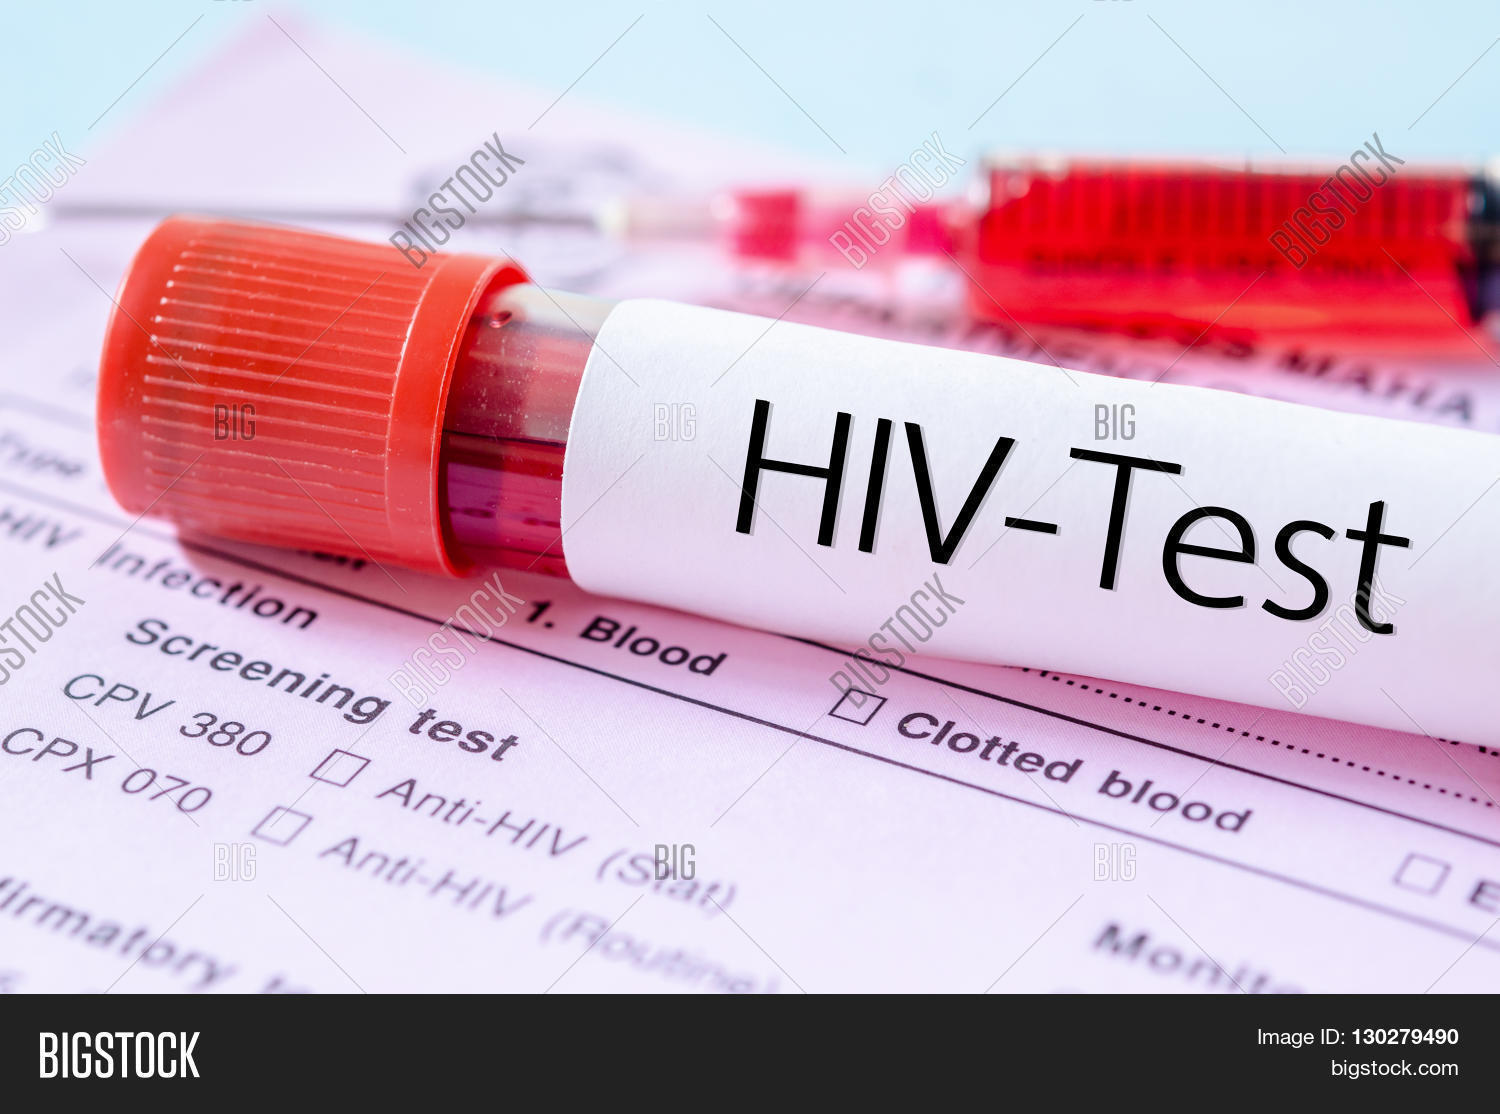 Sample Blood Collection Tube Hiv Image Amp Photo